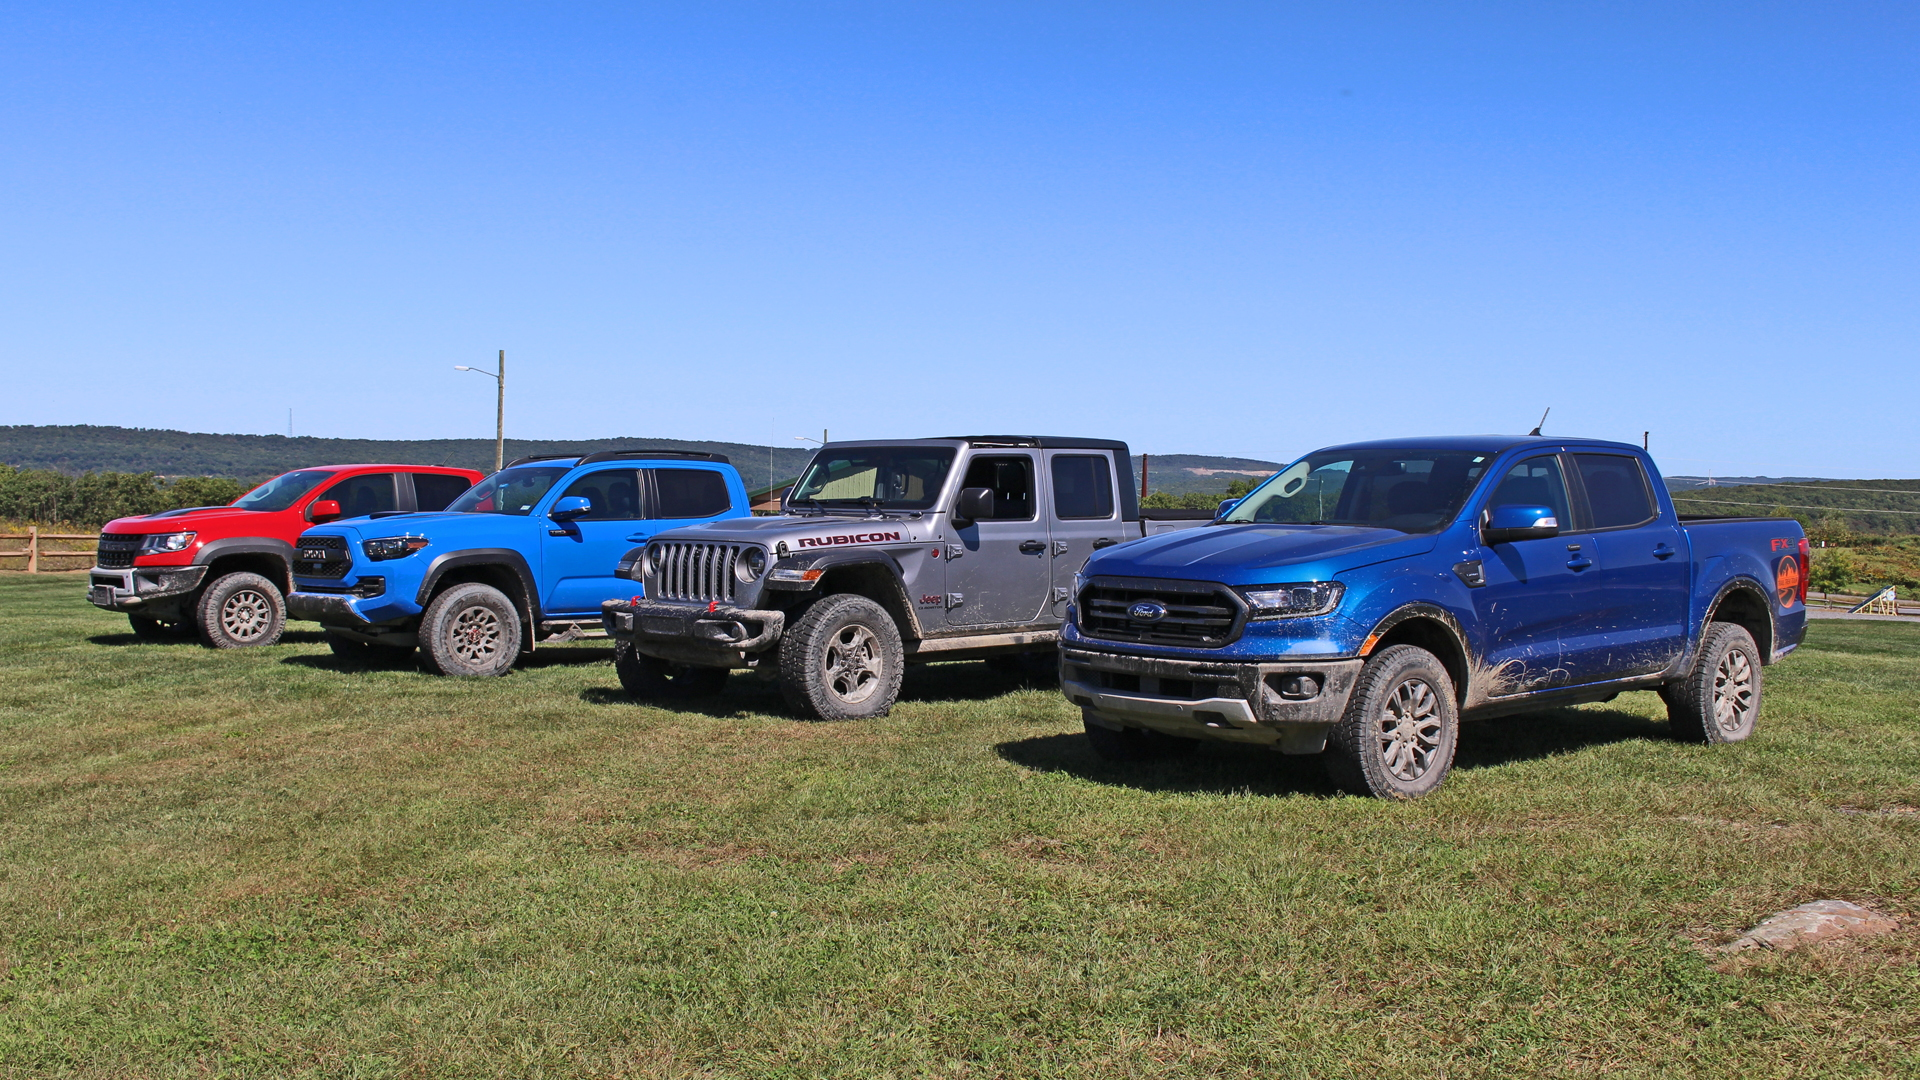 Ford Ranger FX4, Jeep Gladiator Rubicon, Toyota Tacoma TRD Pro and Chevrolet Colorado ZR2 Bison